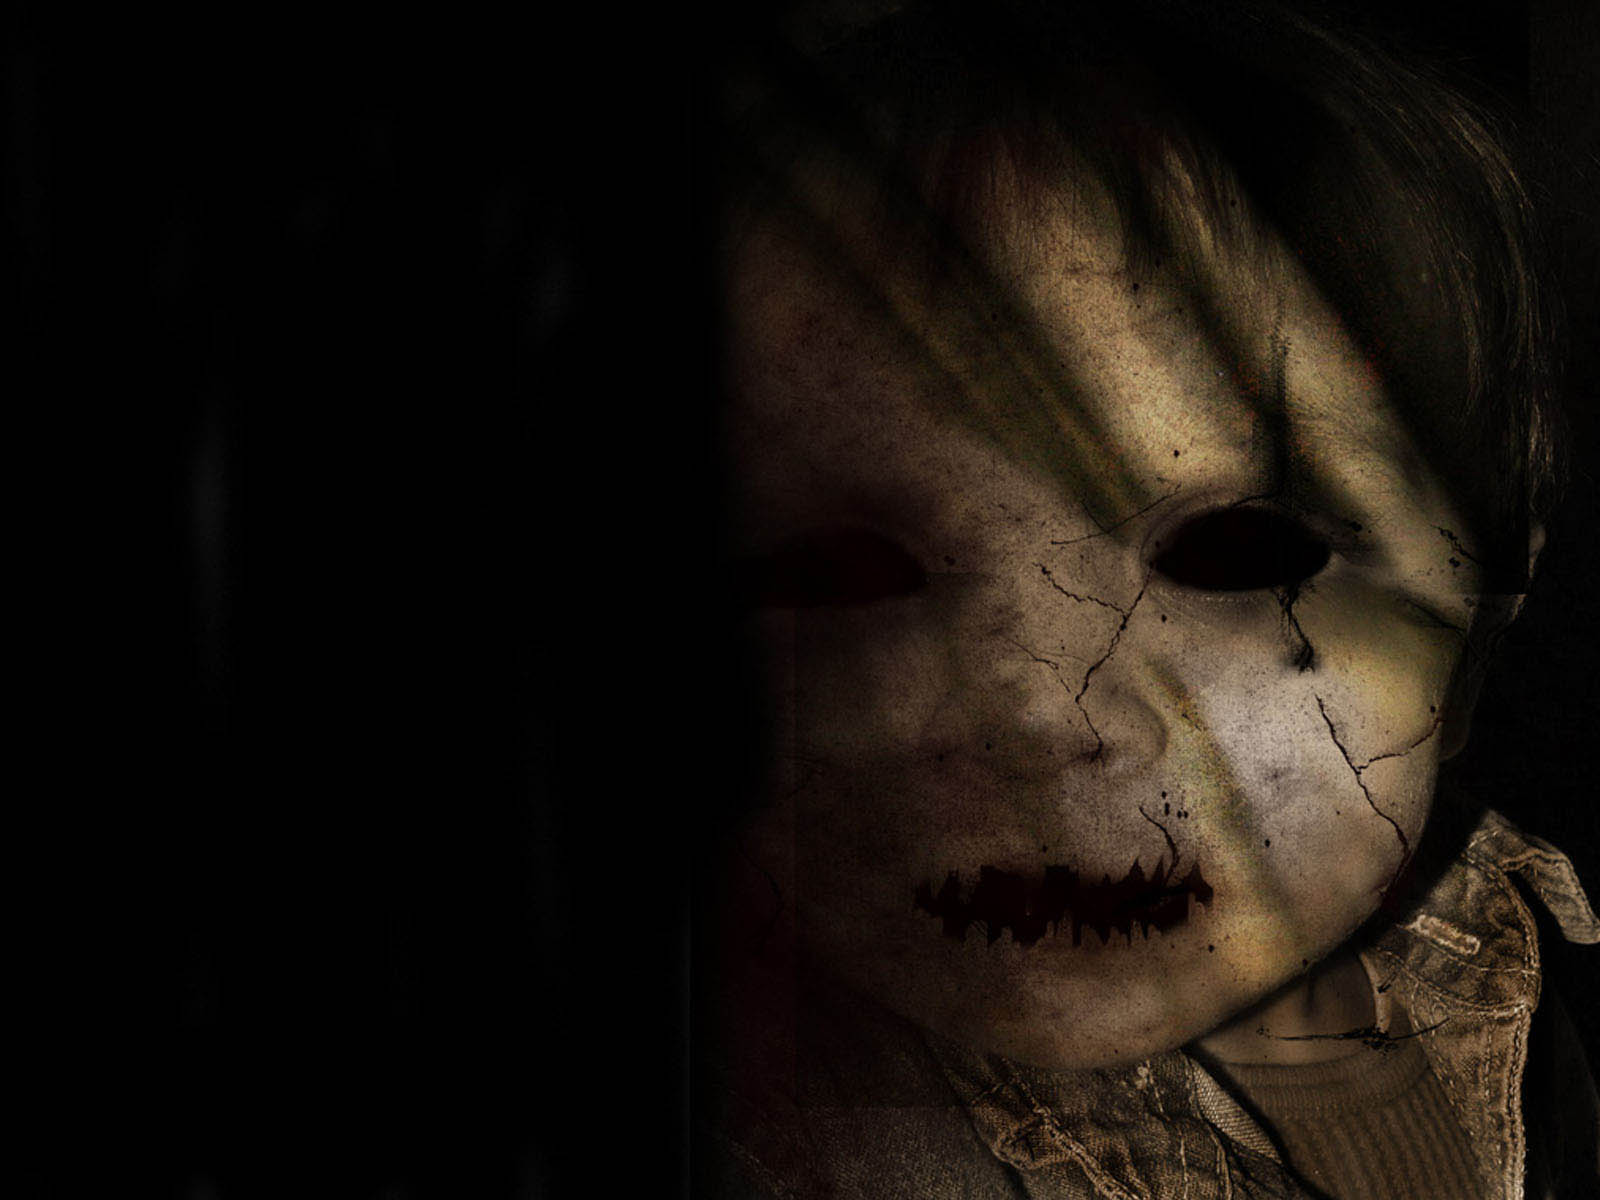 wallpaper: Scary Horror Wallpapers